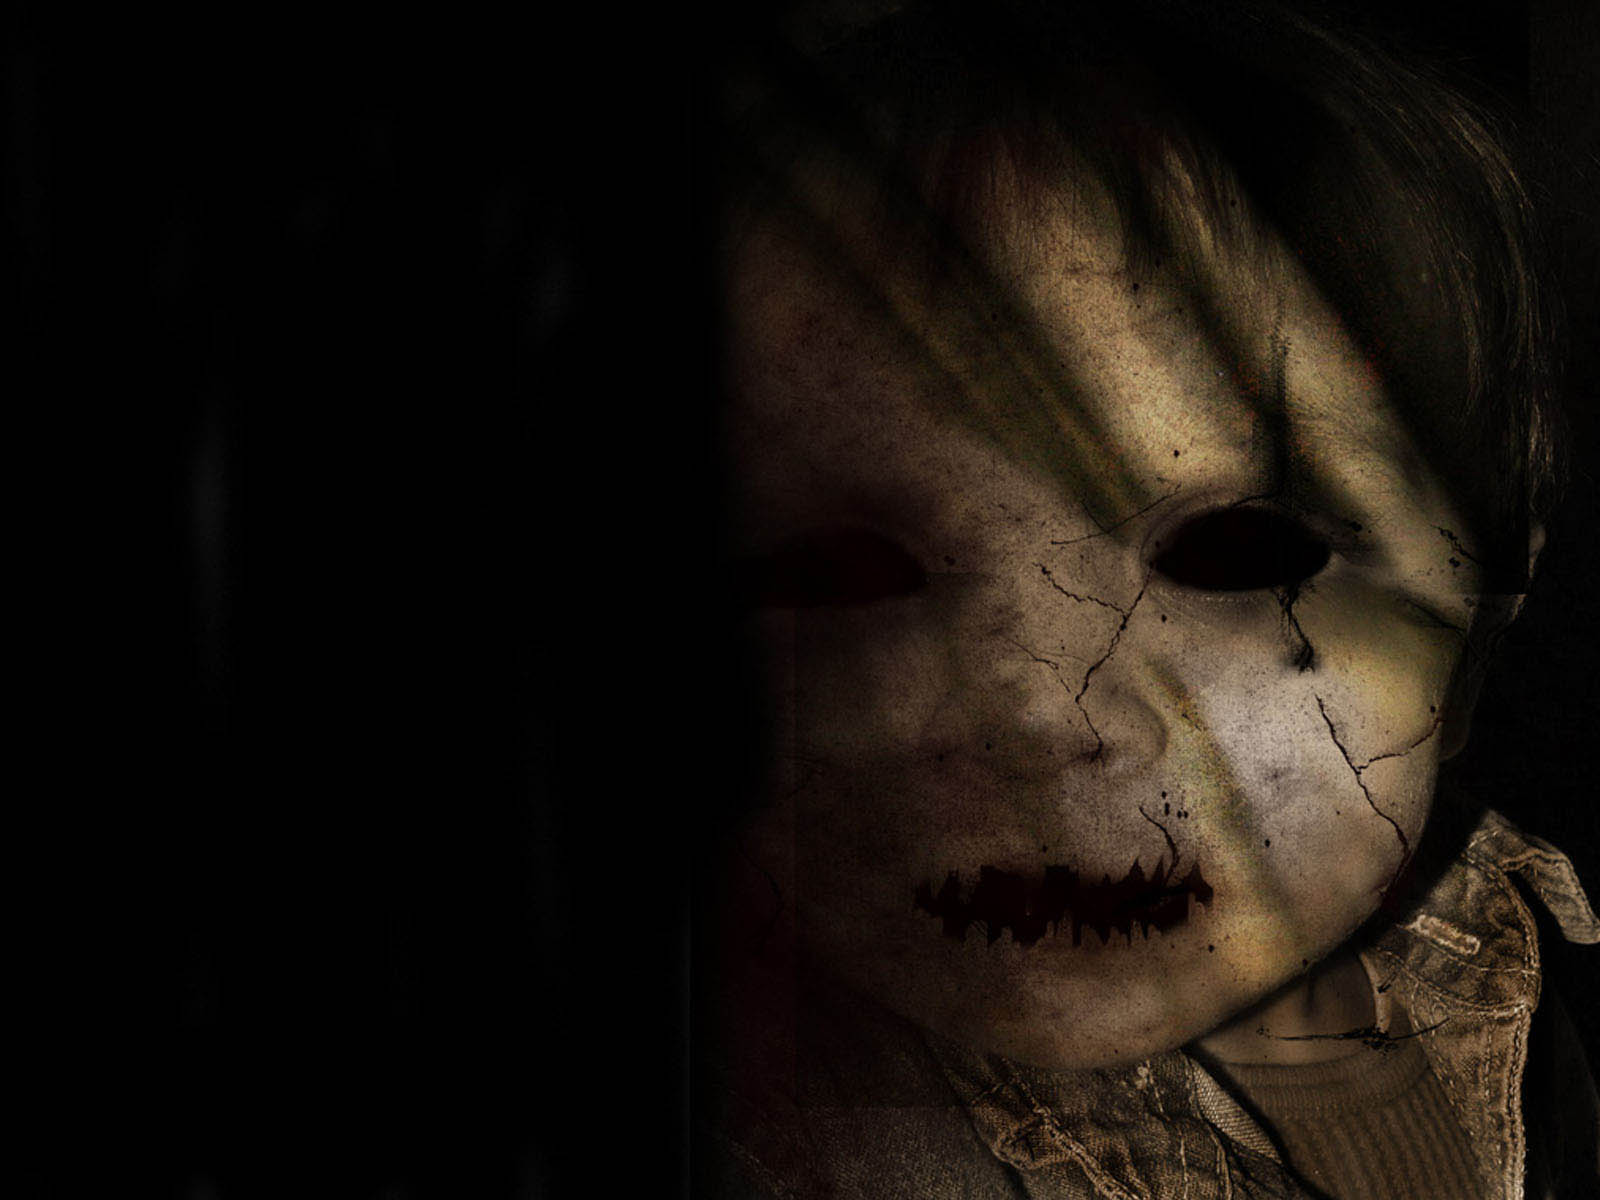 wallpaper: Scary Horror Wallpapers